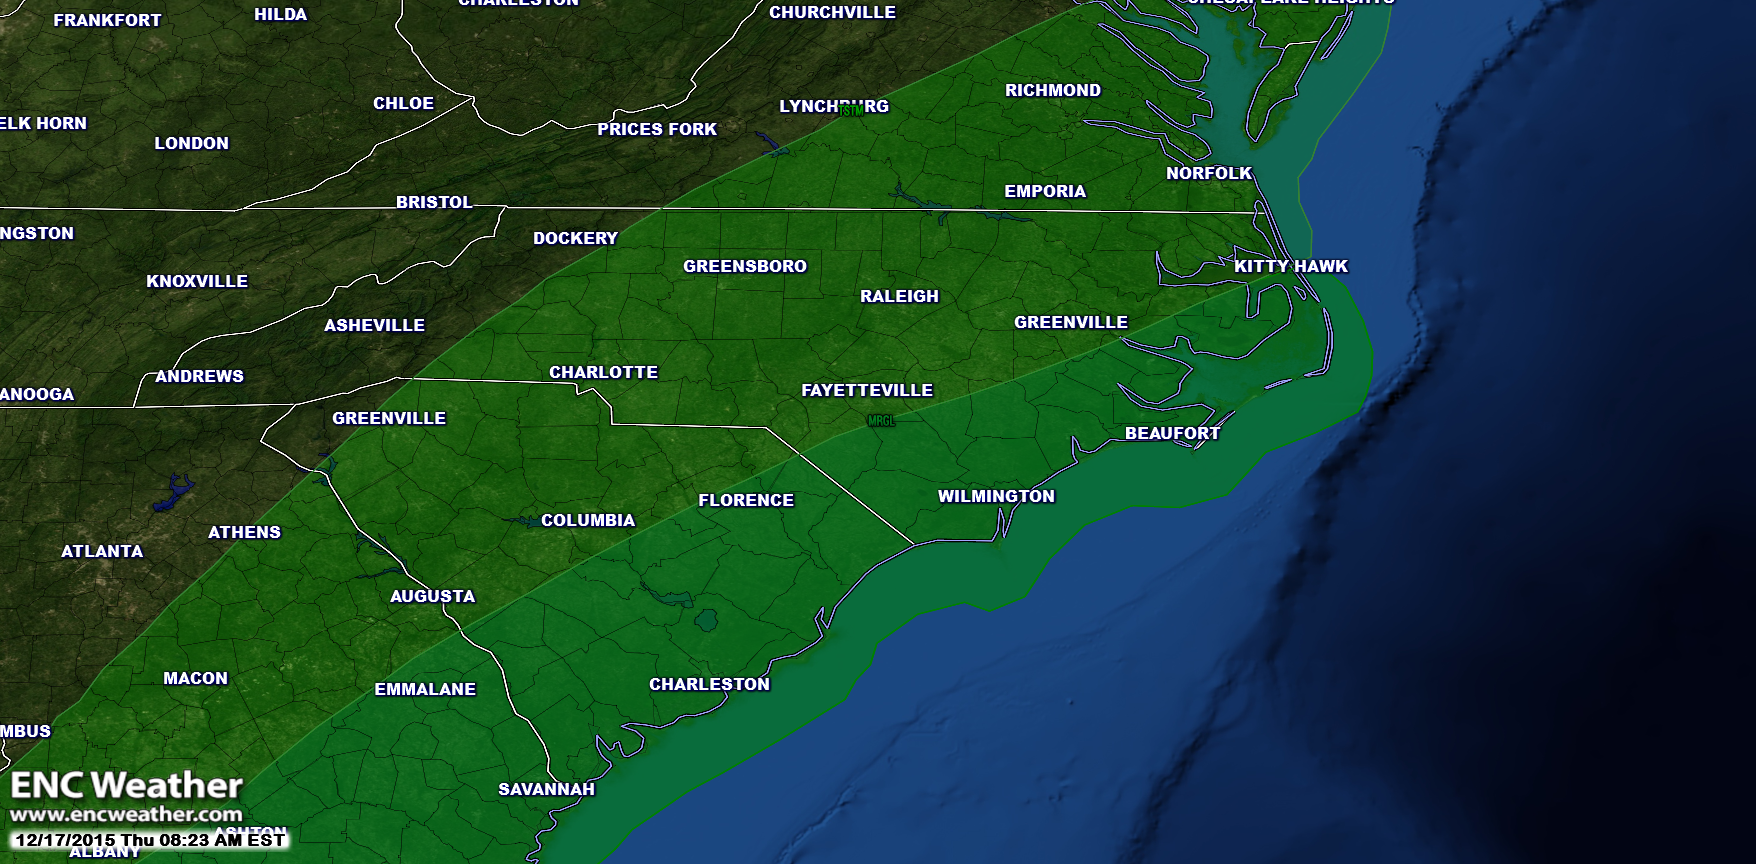 The Storm Prediction Center has parts of ENC in the marginal category for thunderstorms this afternoon and this evening.